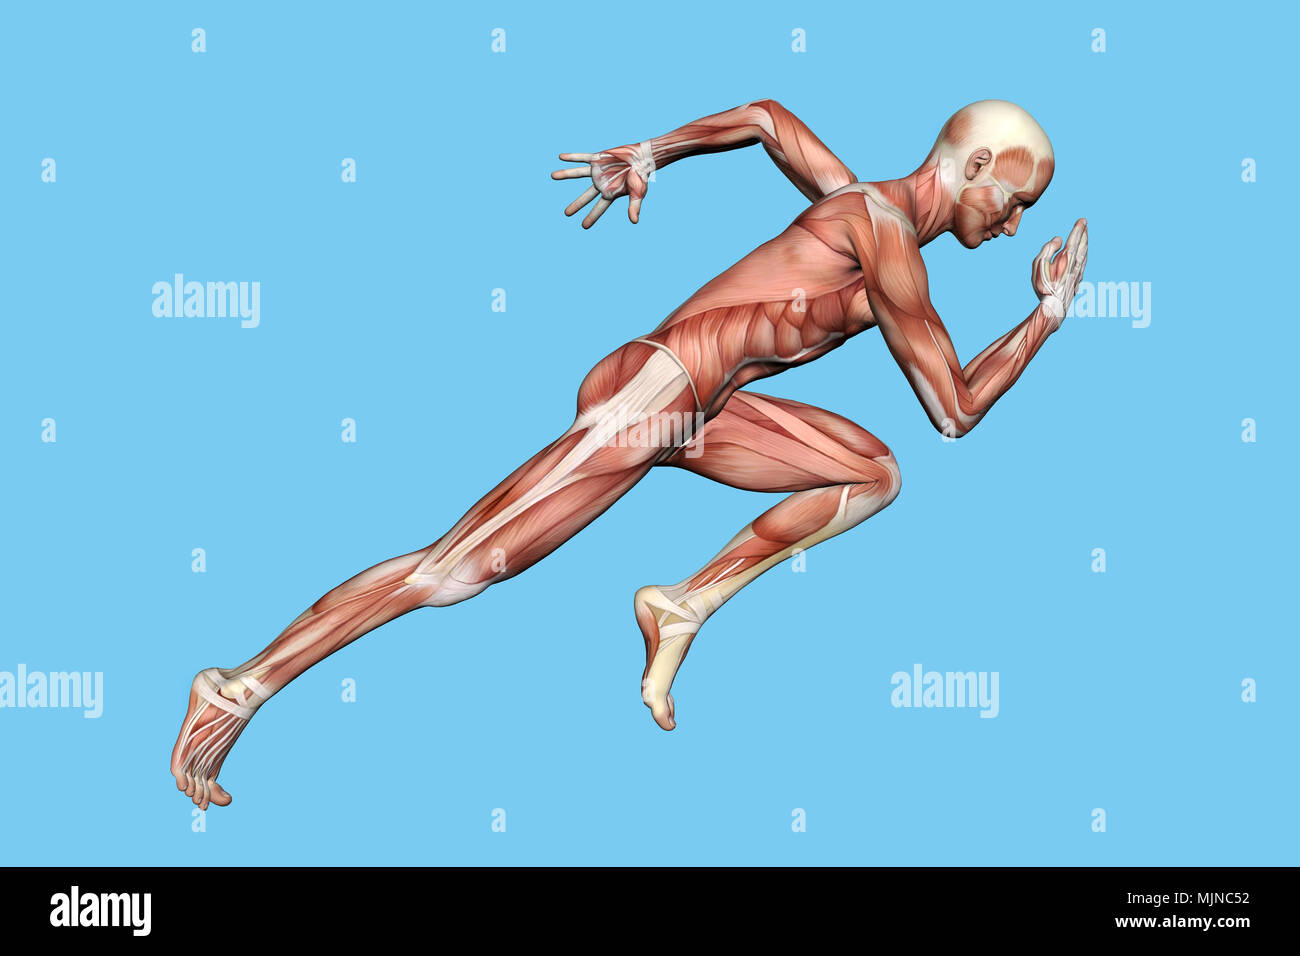 Muscles of Male Anatomy in Motion Stock Photo: 183638030 - Alamy